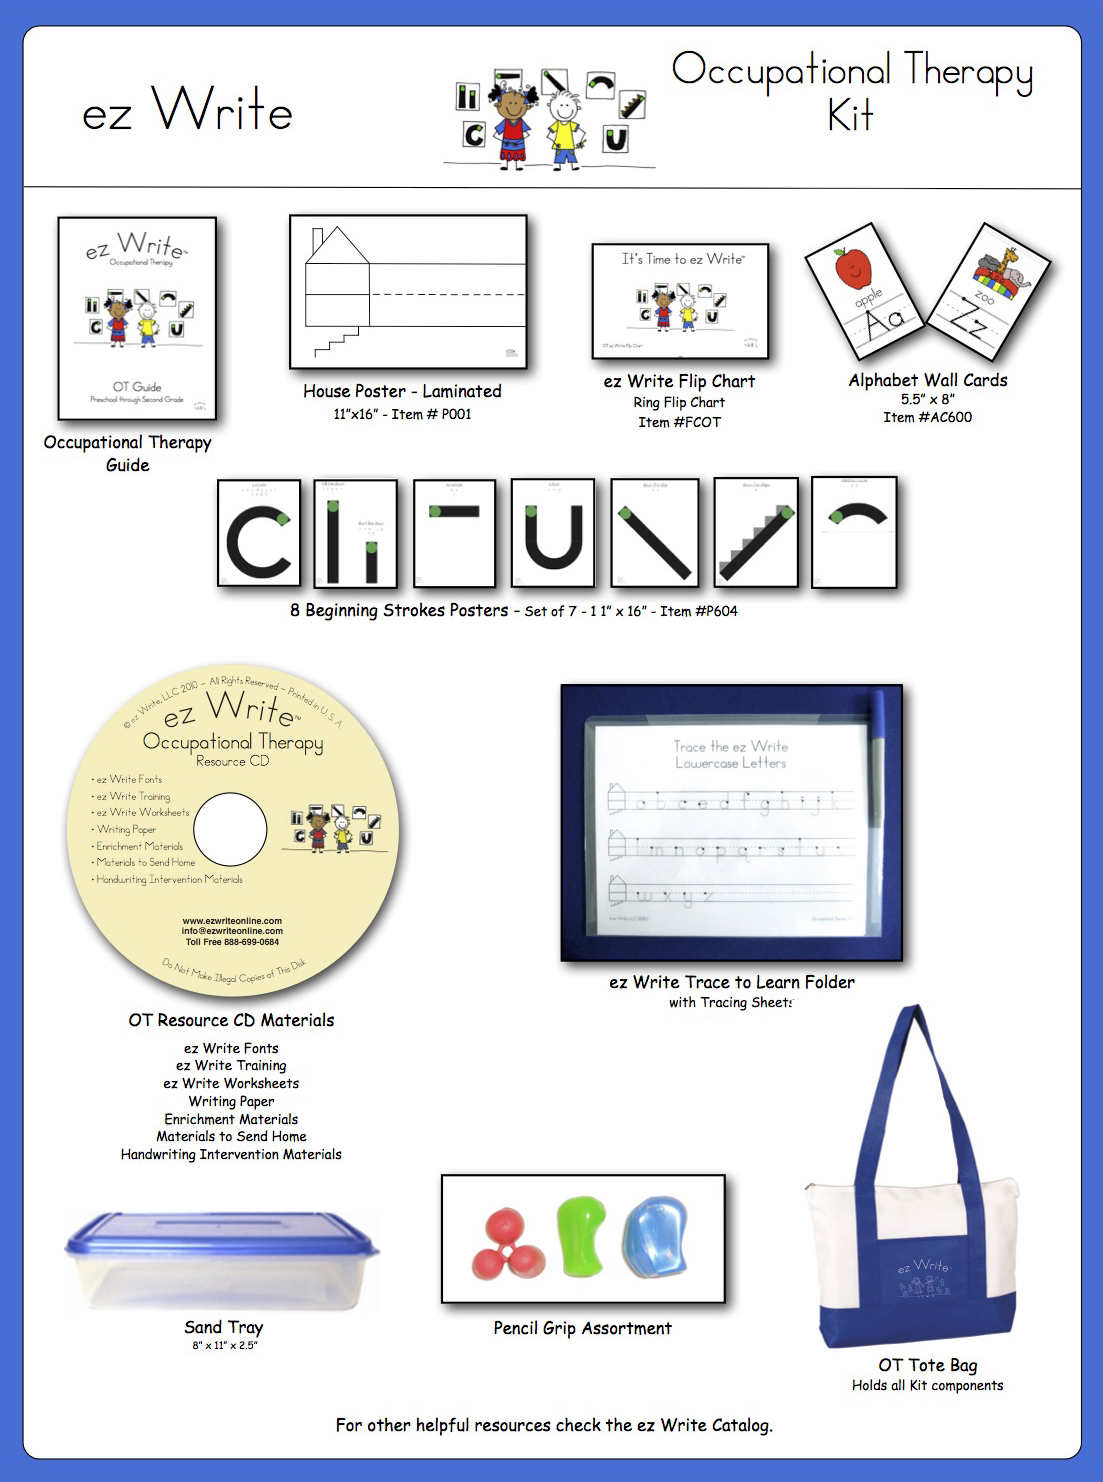 occupational-therapy-kit